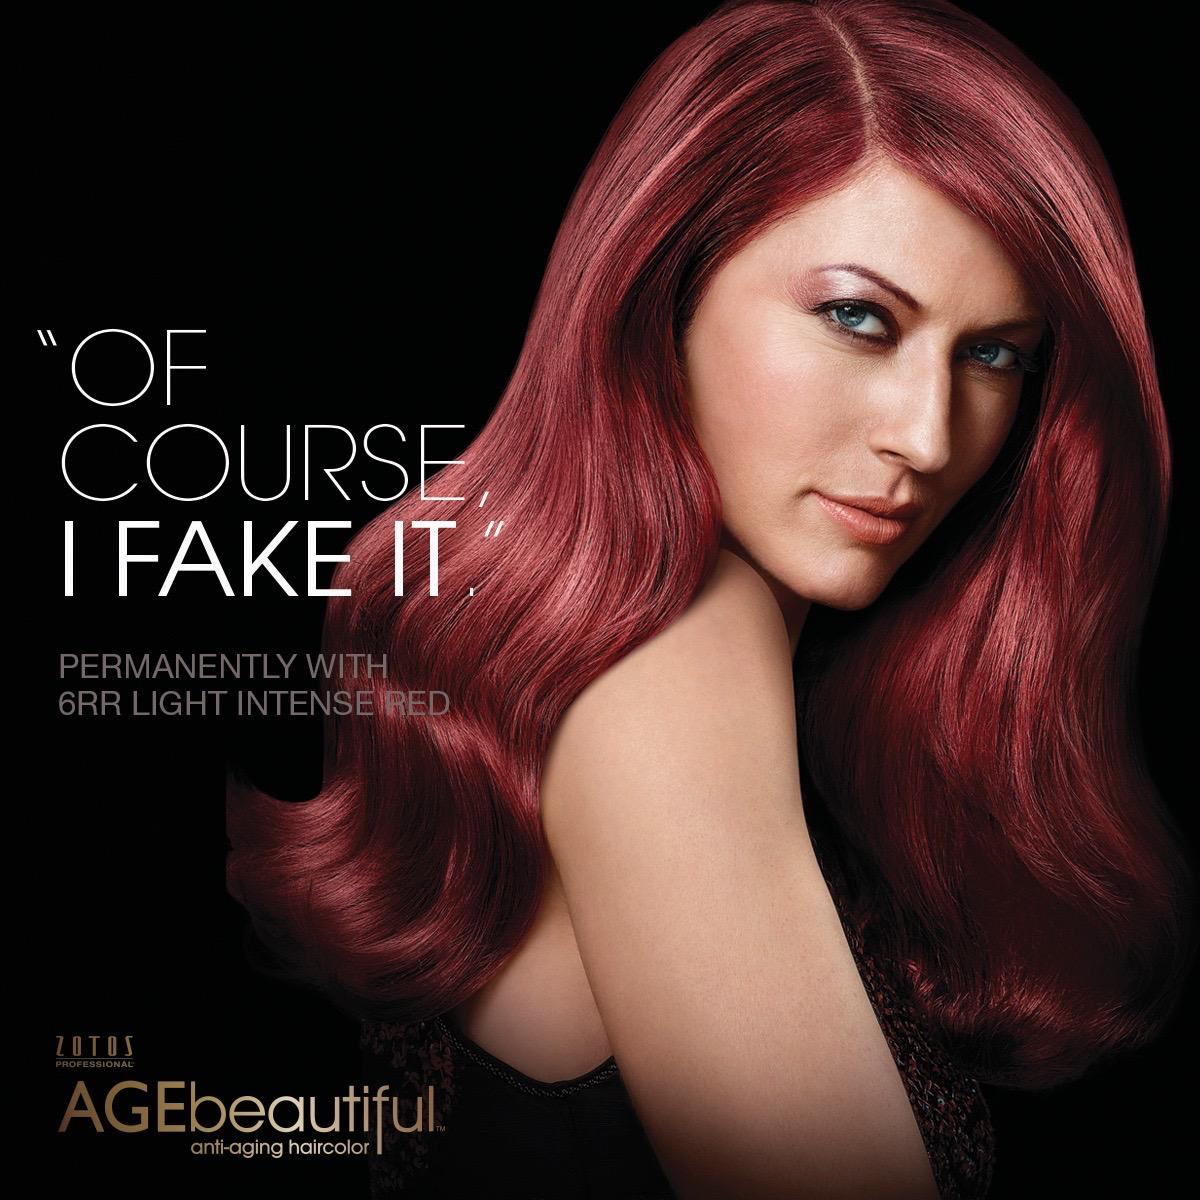 ZOTOS Hair Color, Pleasure Of Faking It, Anti-aging-Haircolor